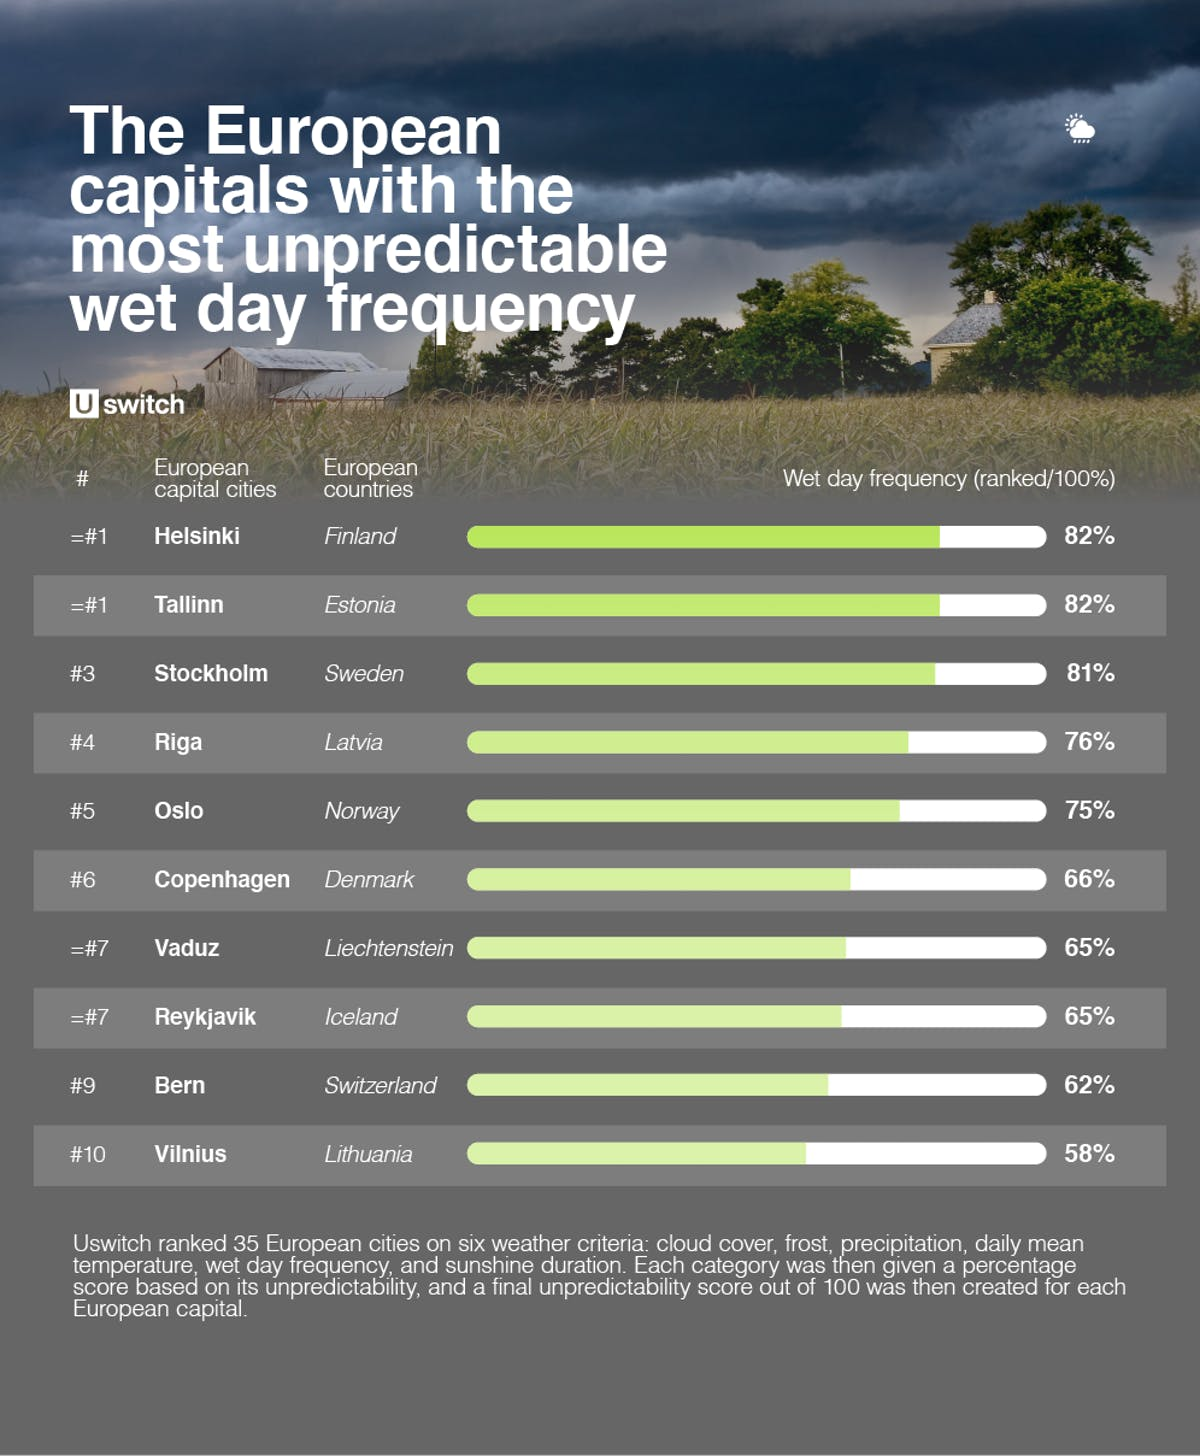 Table of European capitals with the most unpredictable weather wet day frequency